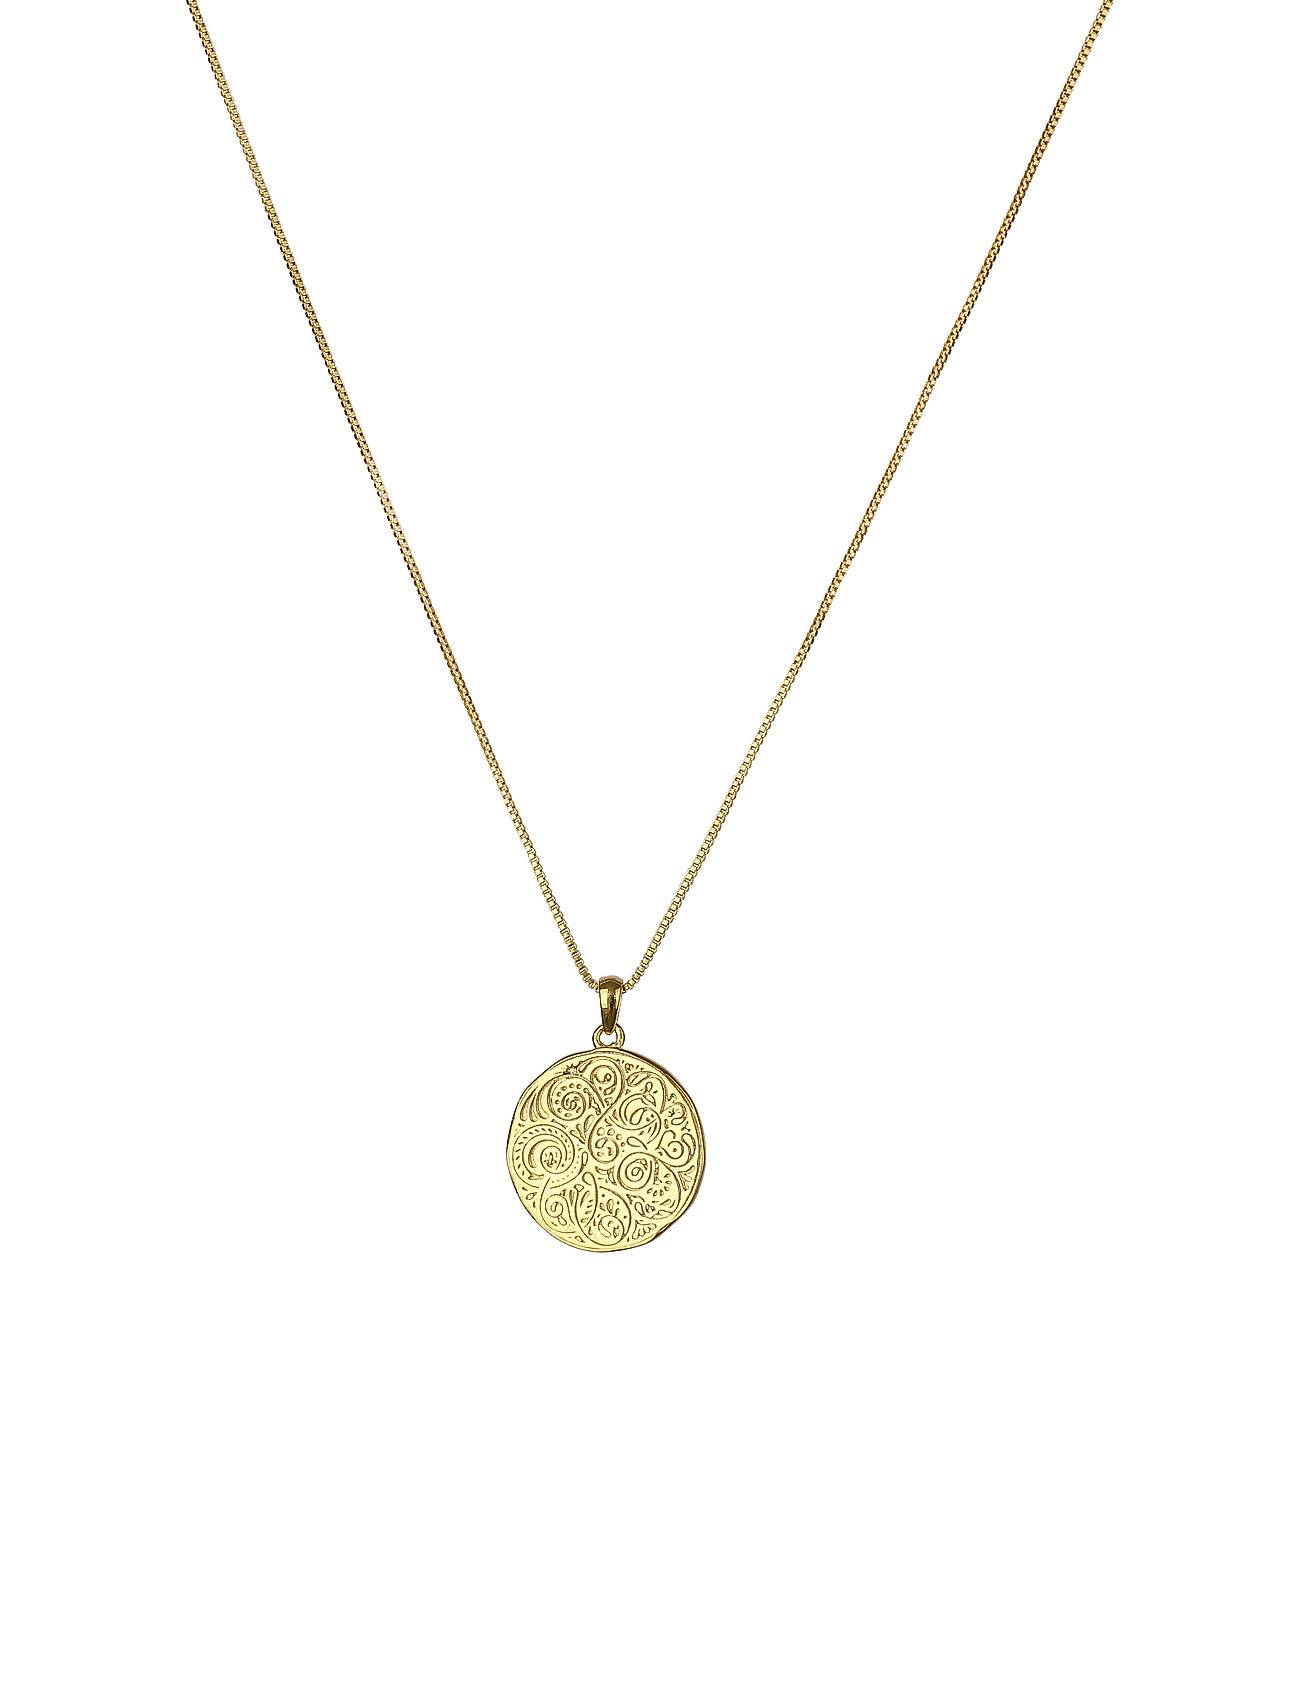 Syster P Kristine Round Pendant Gold Accessories Jewellery Necklaces Dainty Necklaces Kulta Syster P